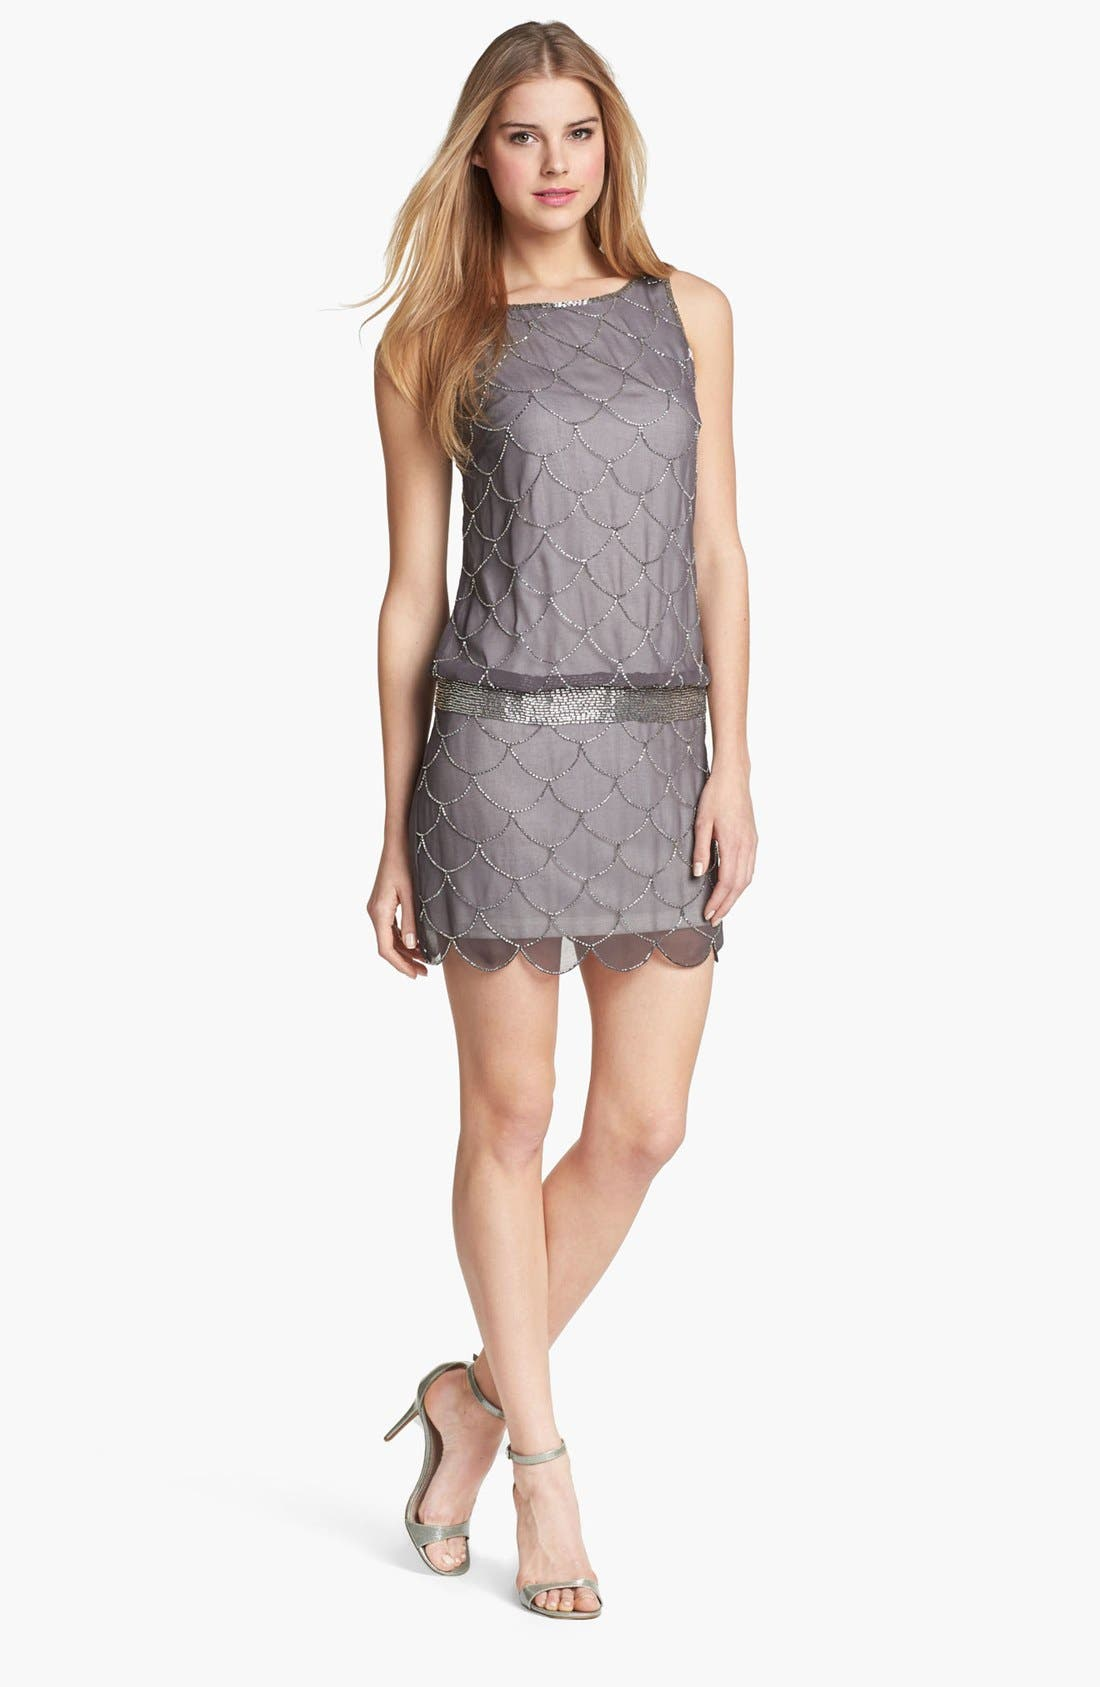 Main Image - Adrianna Papell 'Fish Scale' Embellished Mesh Dress